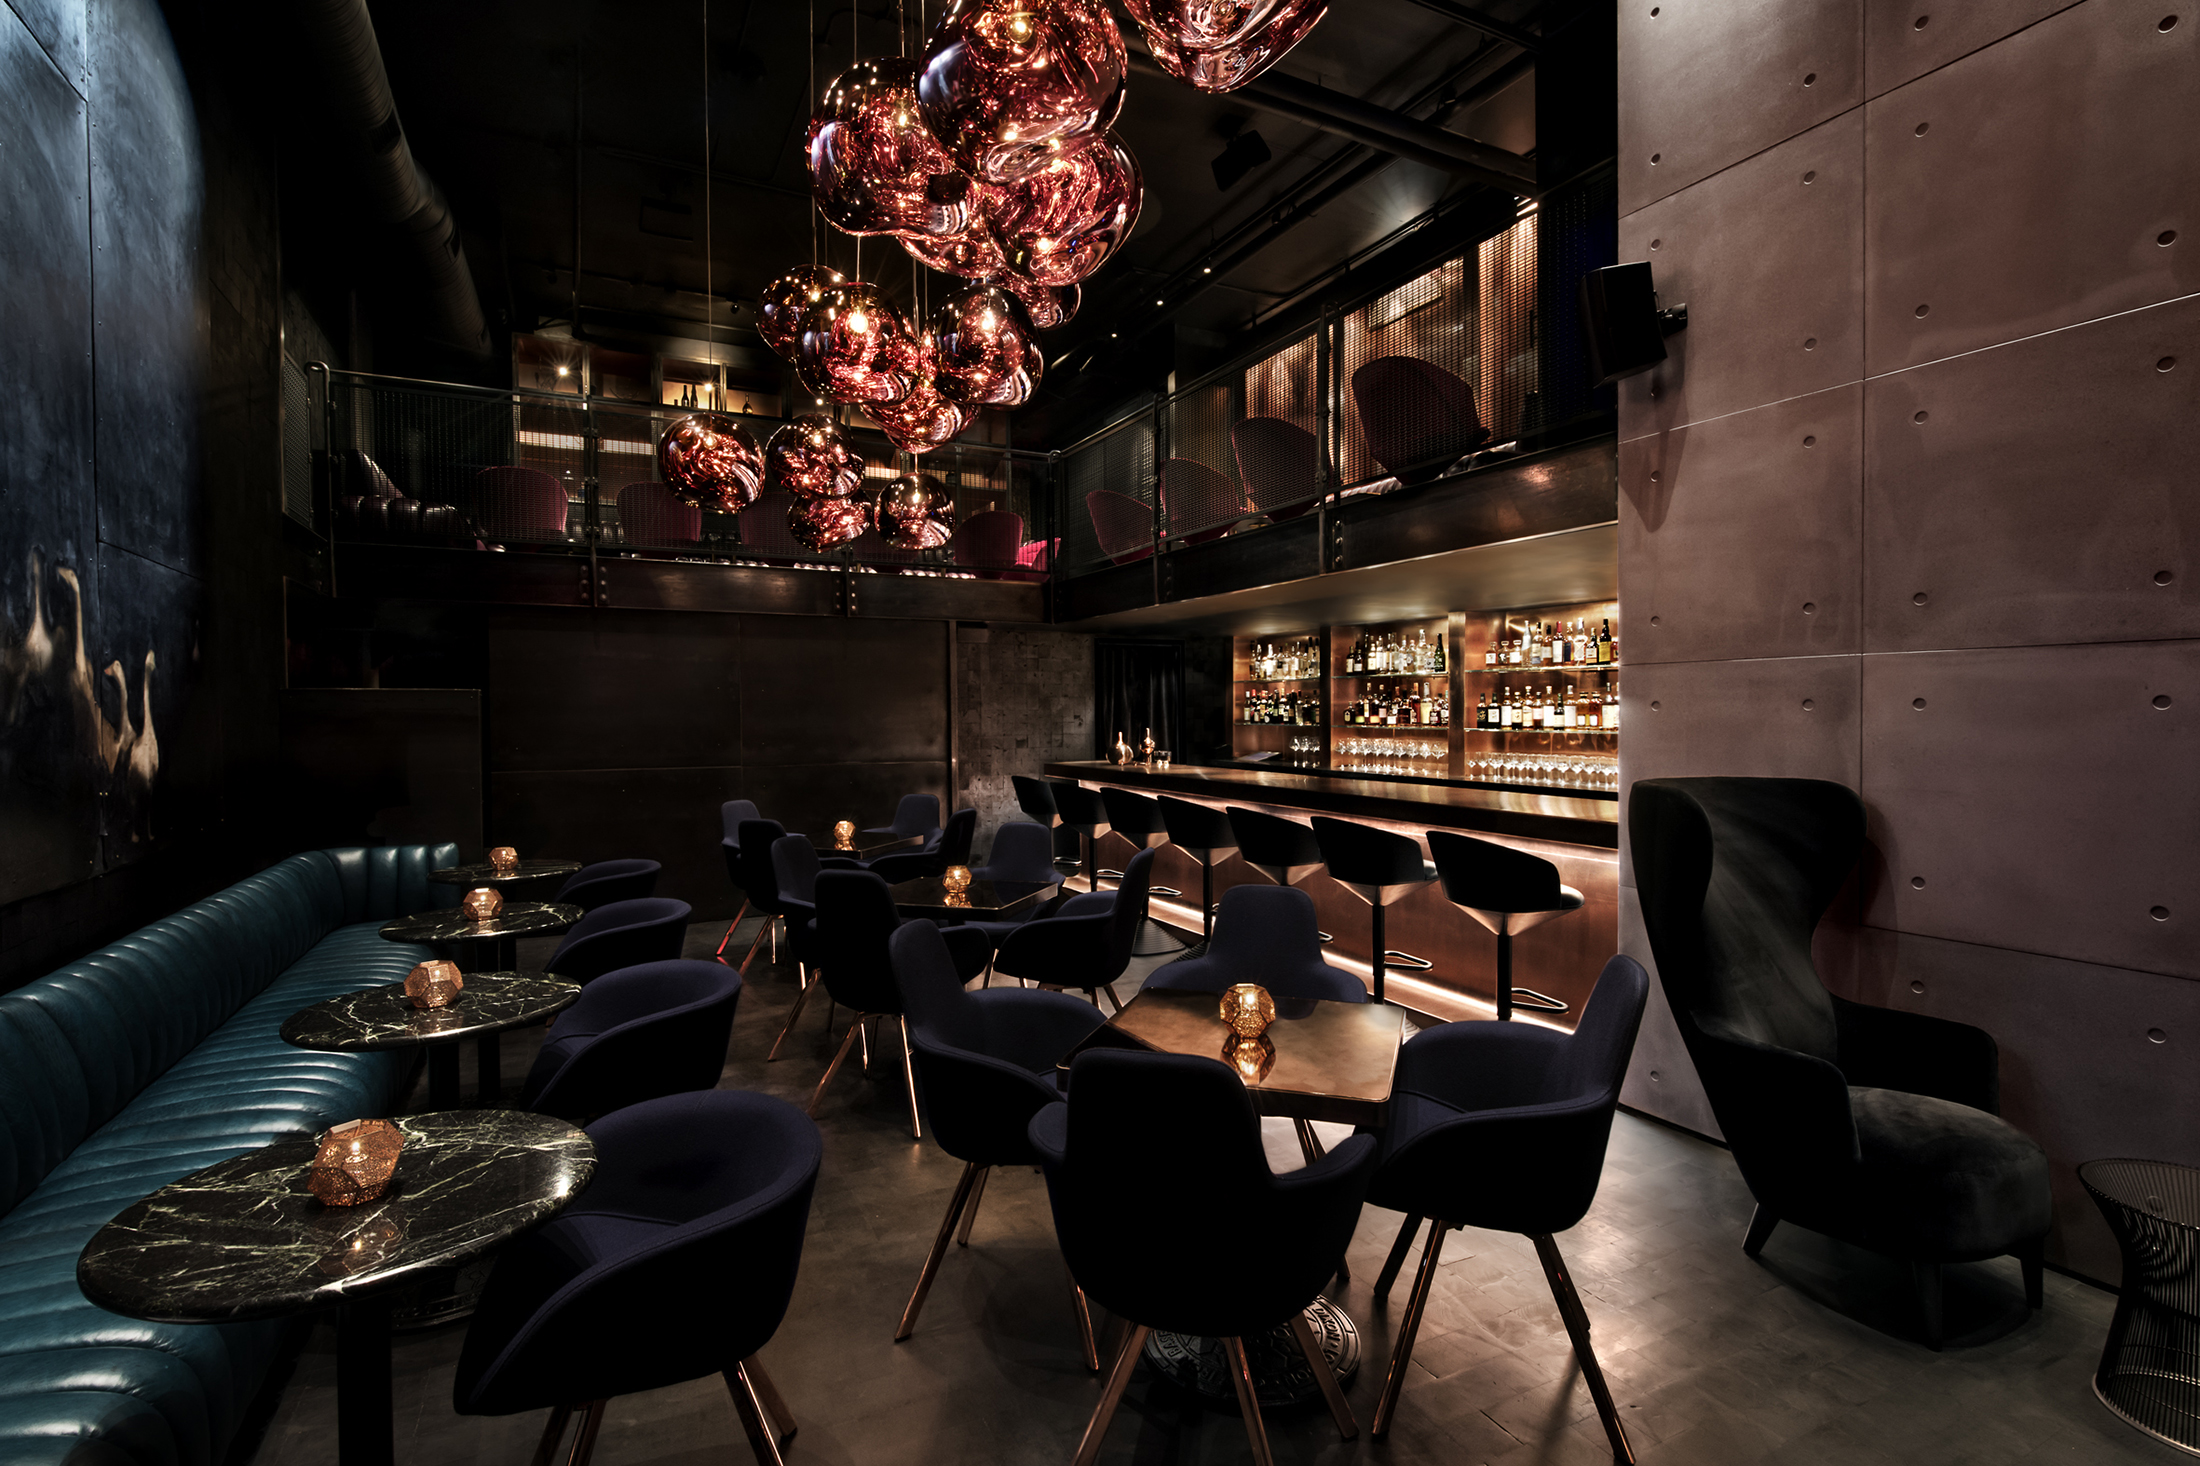 Inside Himitsu, Melt lamps designed by Tom Dixon hang near the bar. (Photo: Emily Andrews)